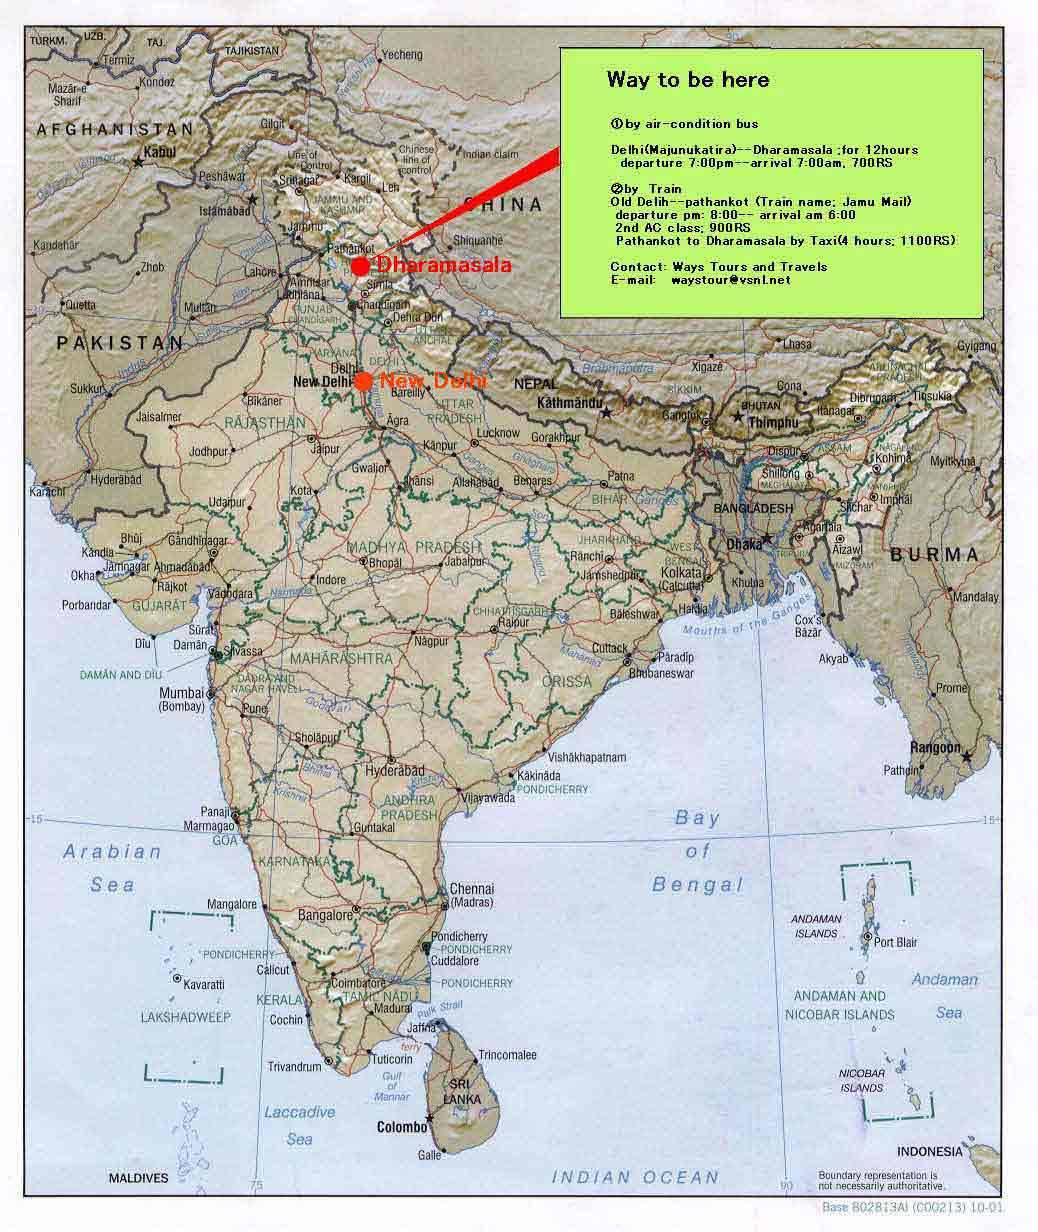 Himalaya India Map.Way To Be Here Subbody Butoh Dance Workshop School Himalaya